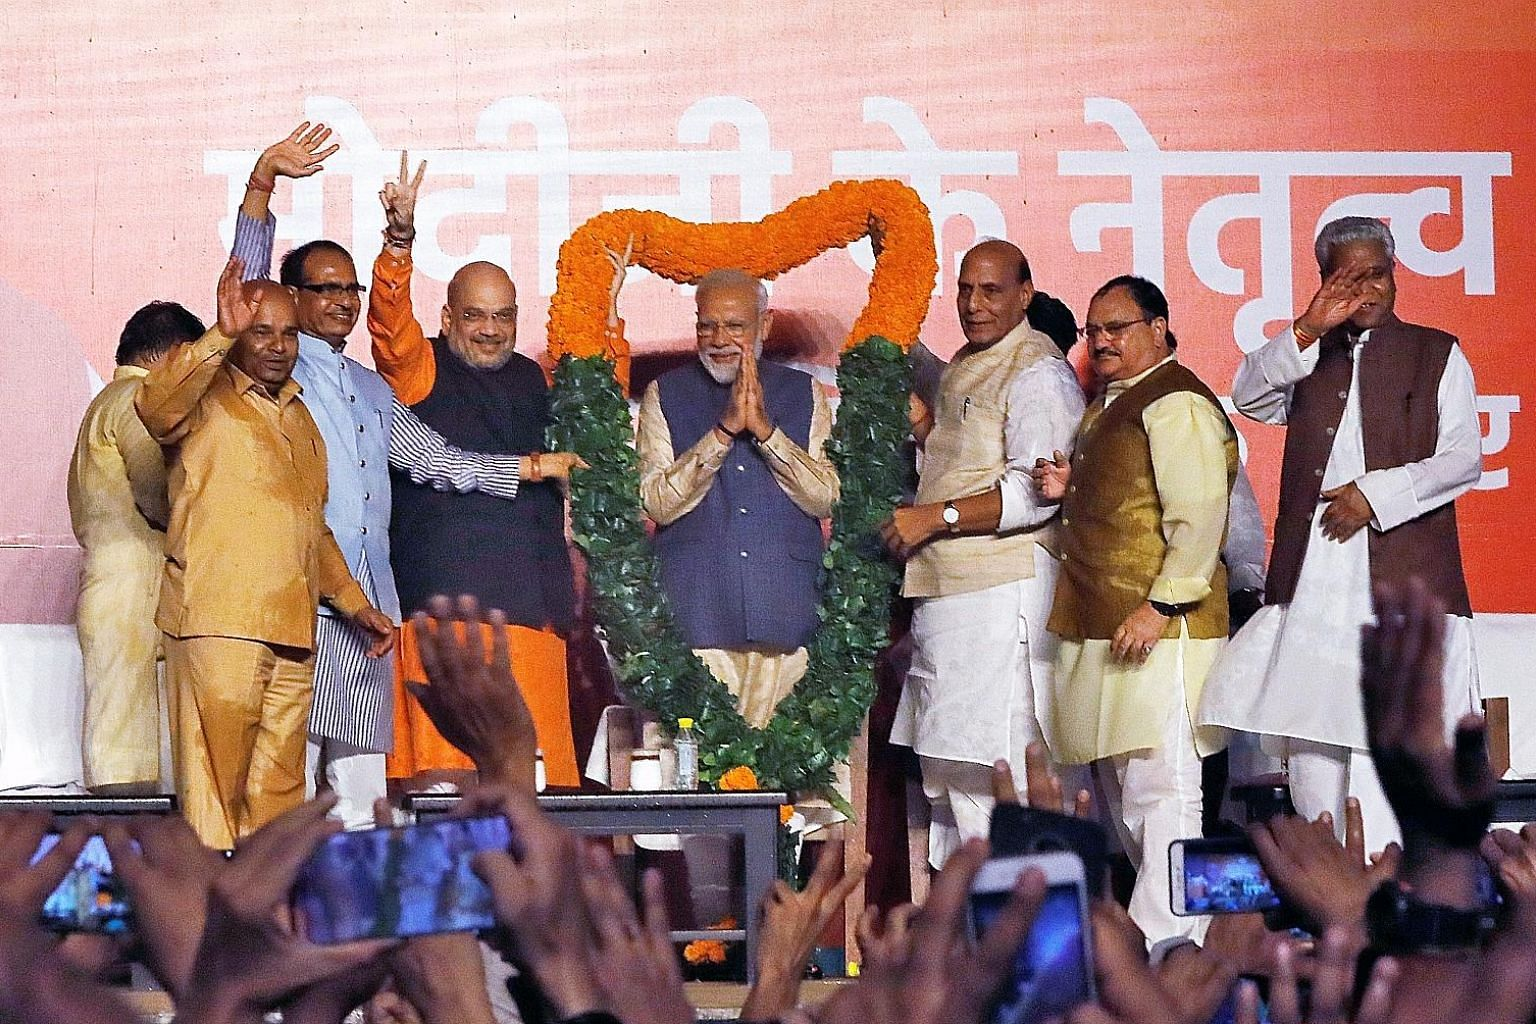 Indian Prime Minister Narendra Modi (centre) being presented with a garland by Bharatiya Janata Party leaders in New Delhi yesterday. By late yesterday evening, Mr Modi's BJP-led alliance was ahead in 351 out of 542 seats. He is only the third prime